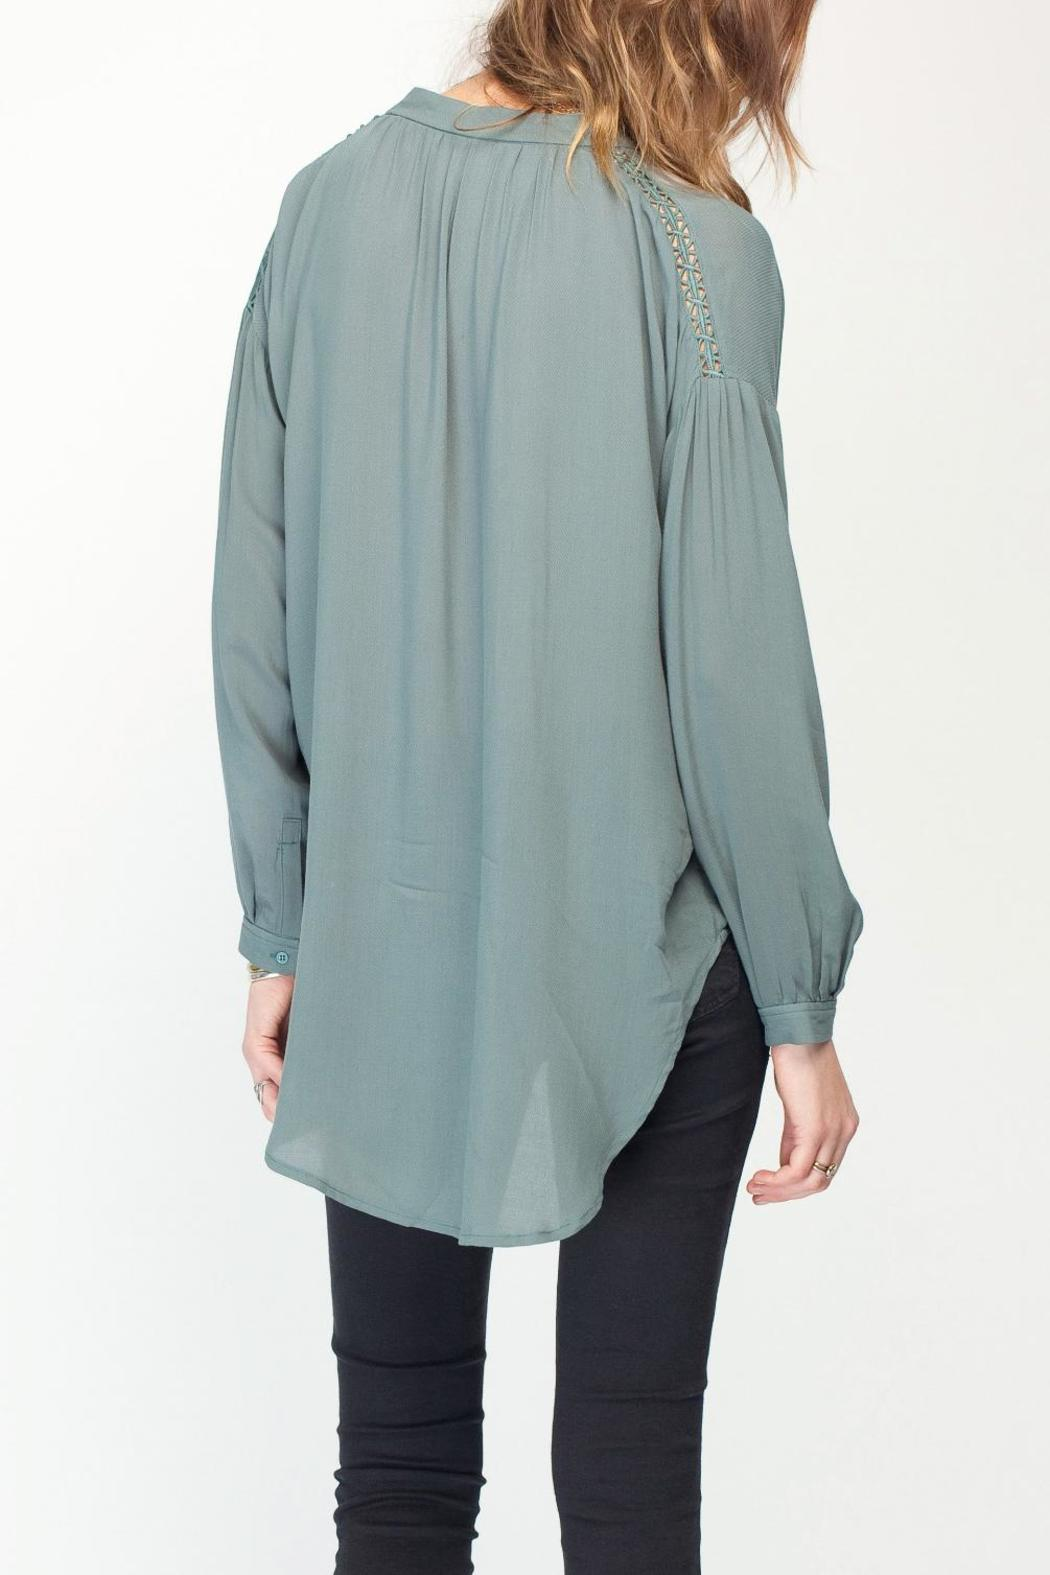 Gentle Fawn Solid Balsam Blouse - Back Cropped Image